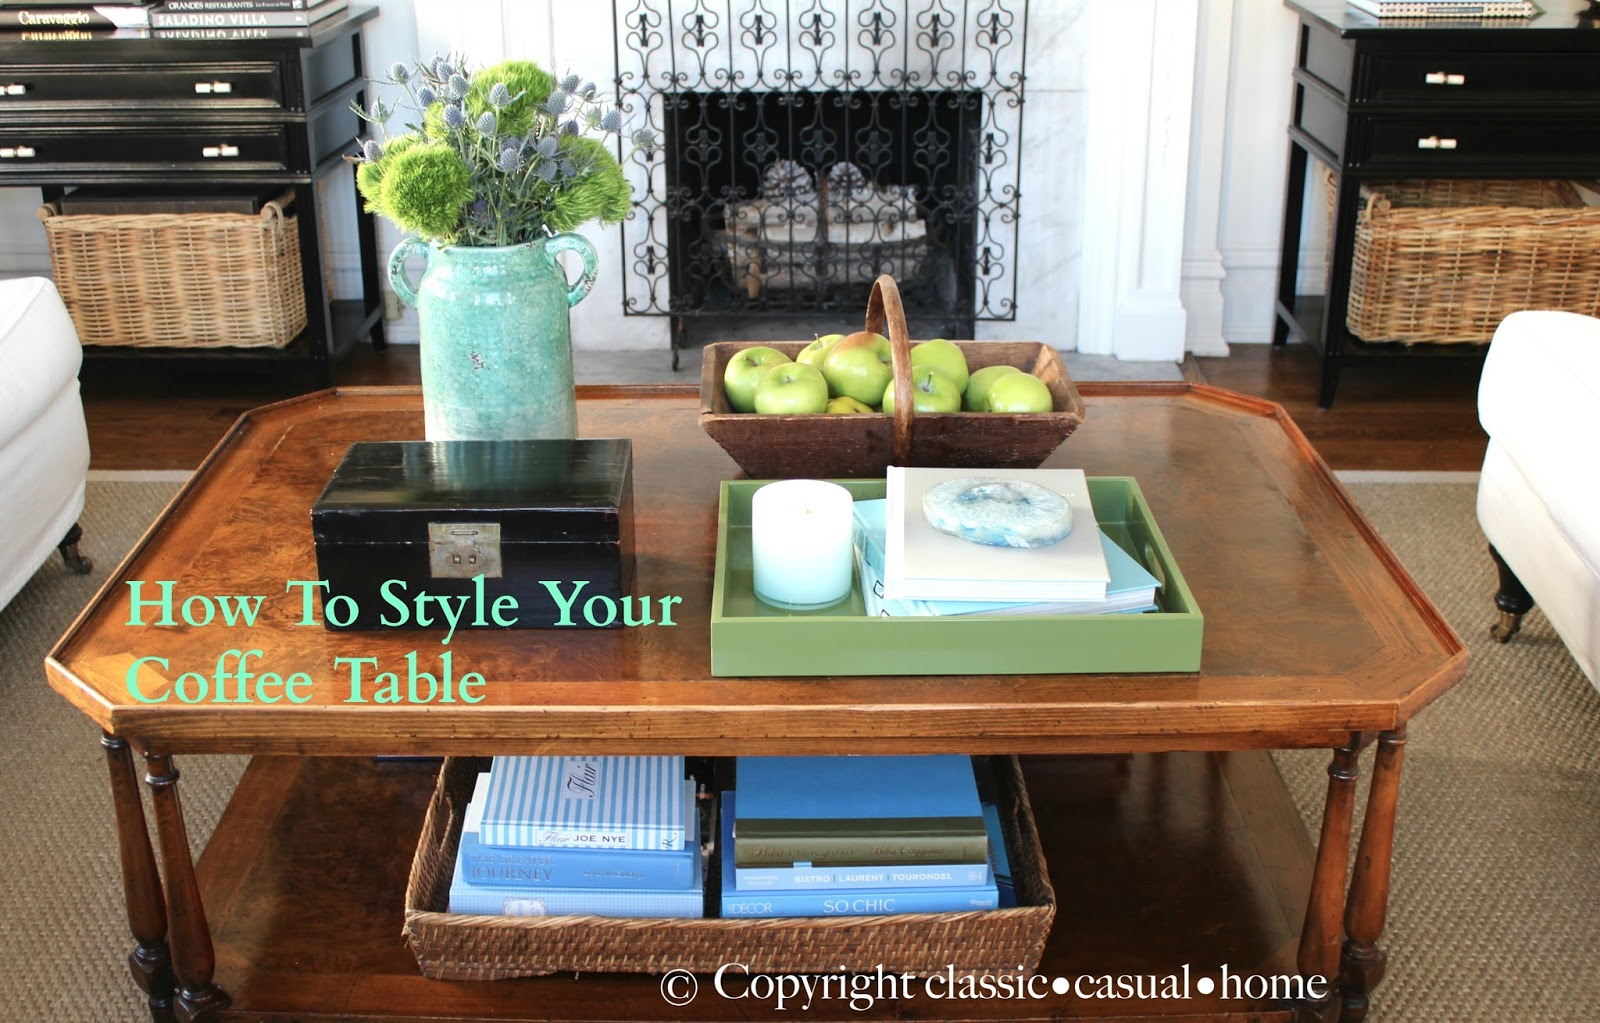 classic casual home Project Design How To Style Your Coffee